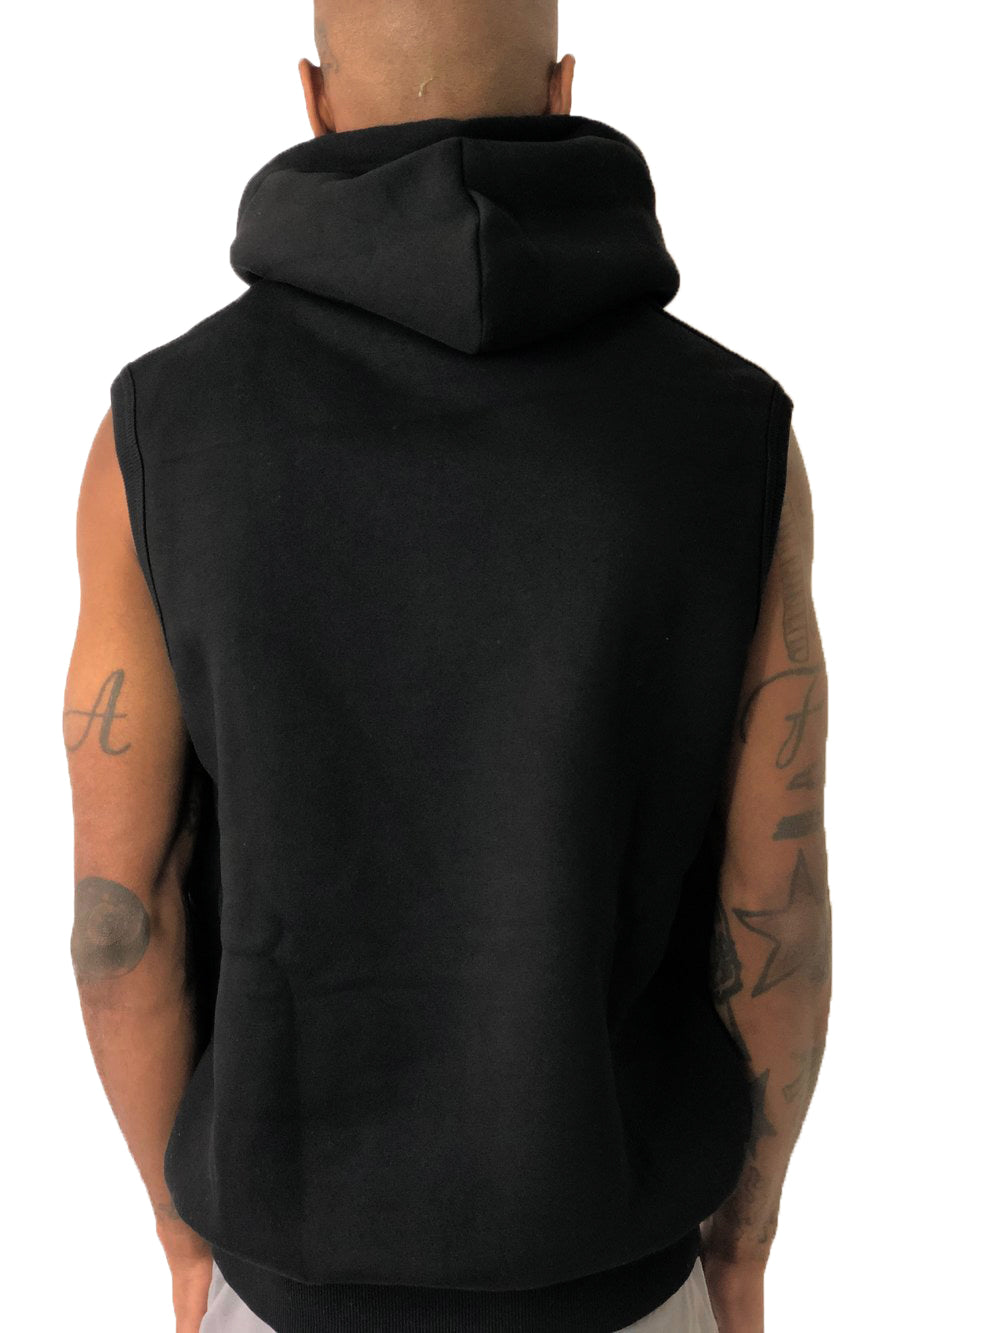 Black Sleeveless Hoodie by iacobuccyounes Italy - Brit Boss